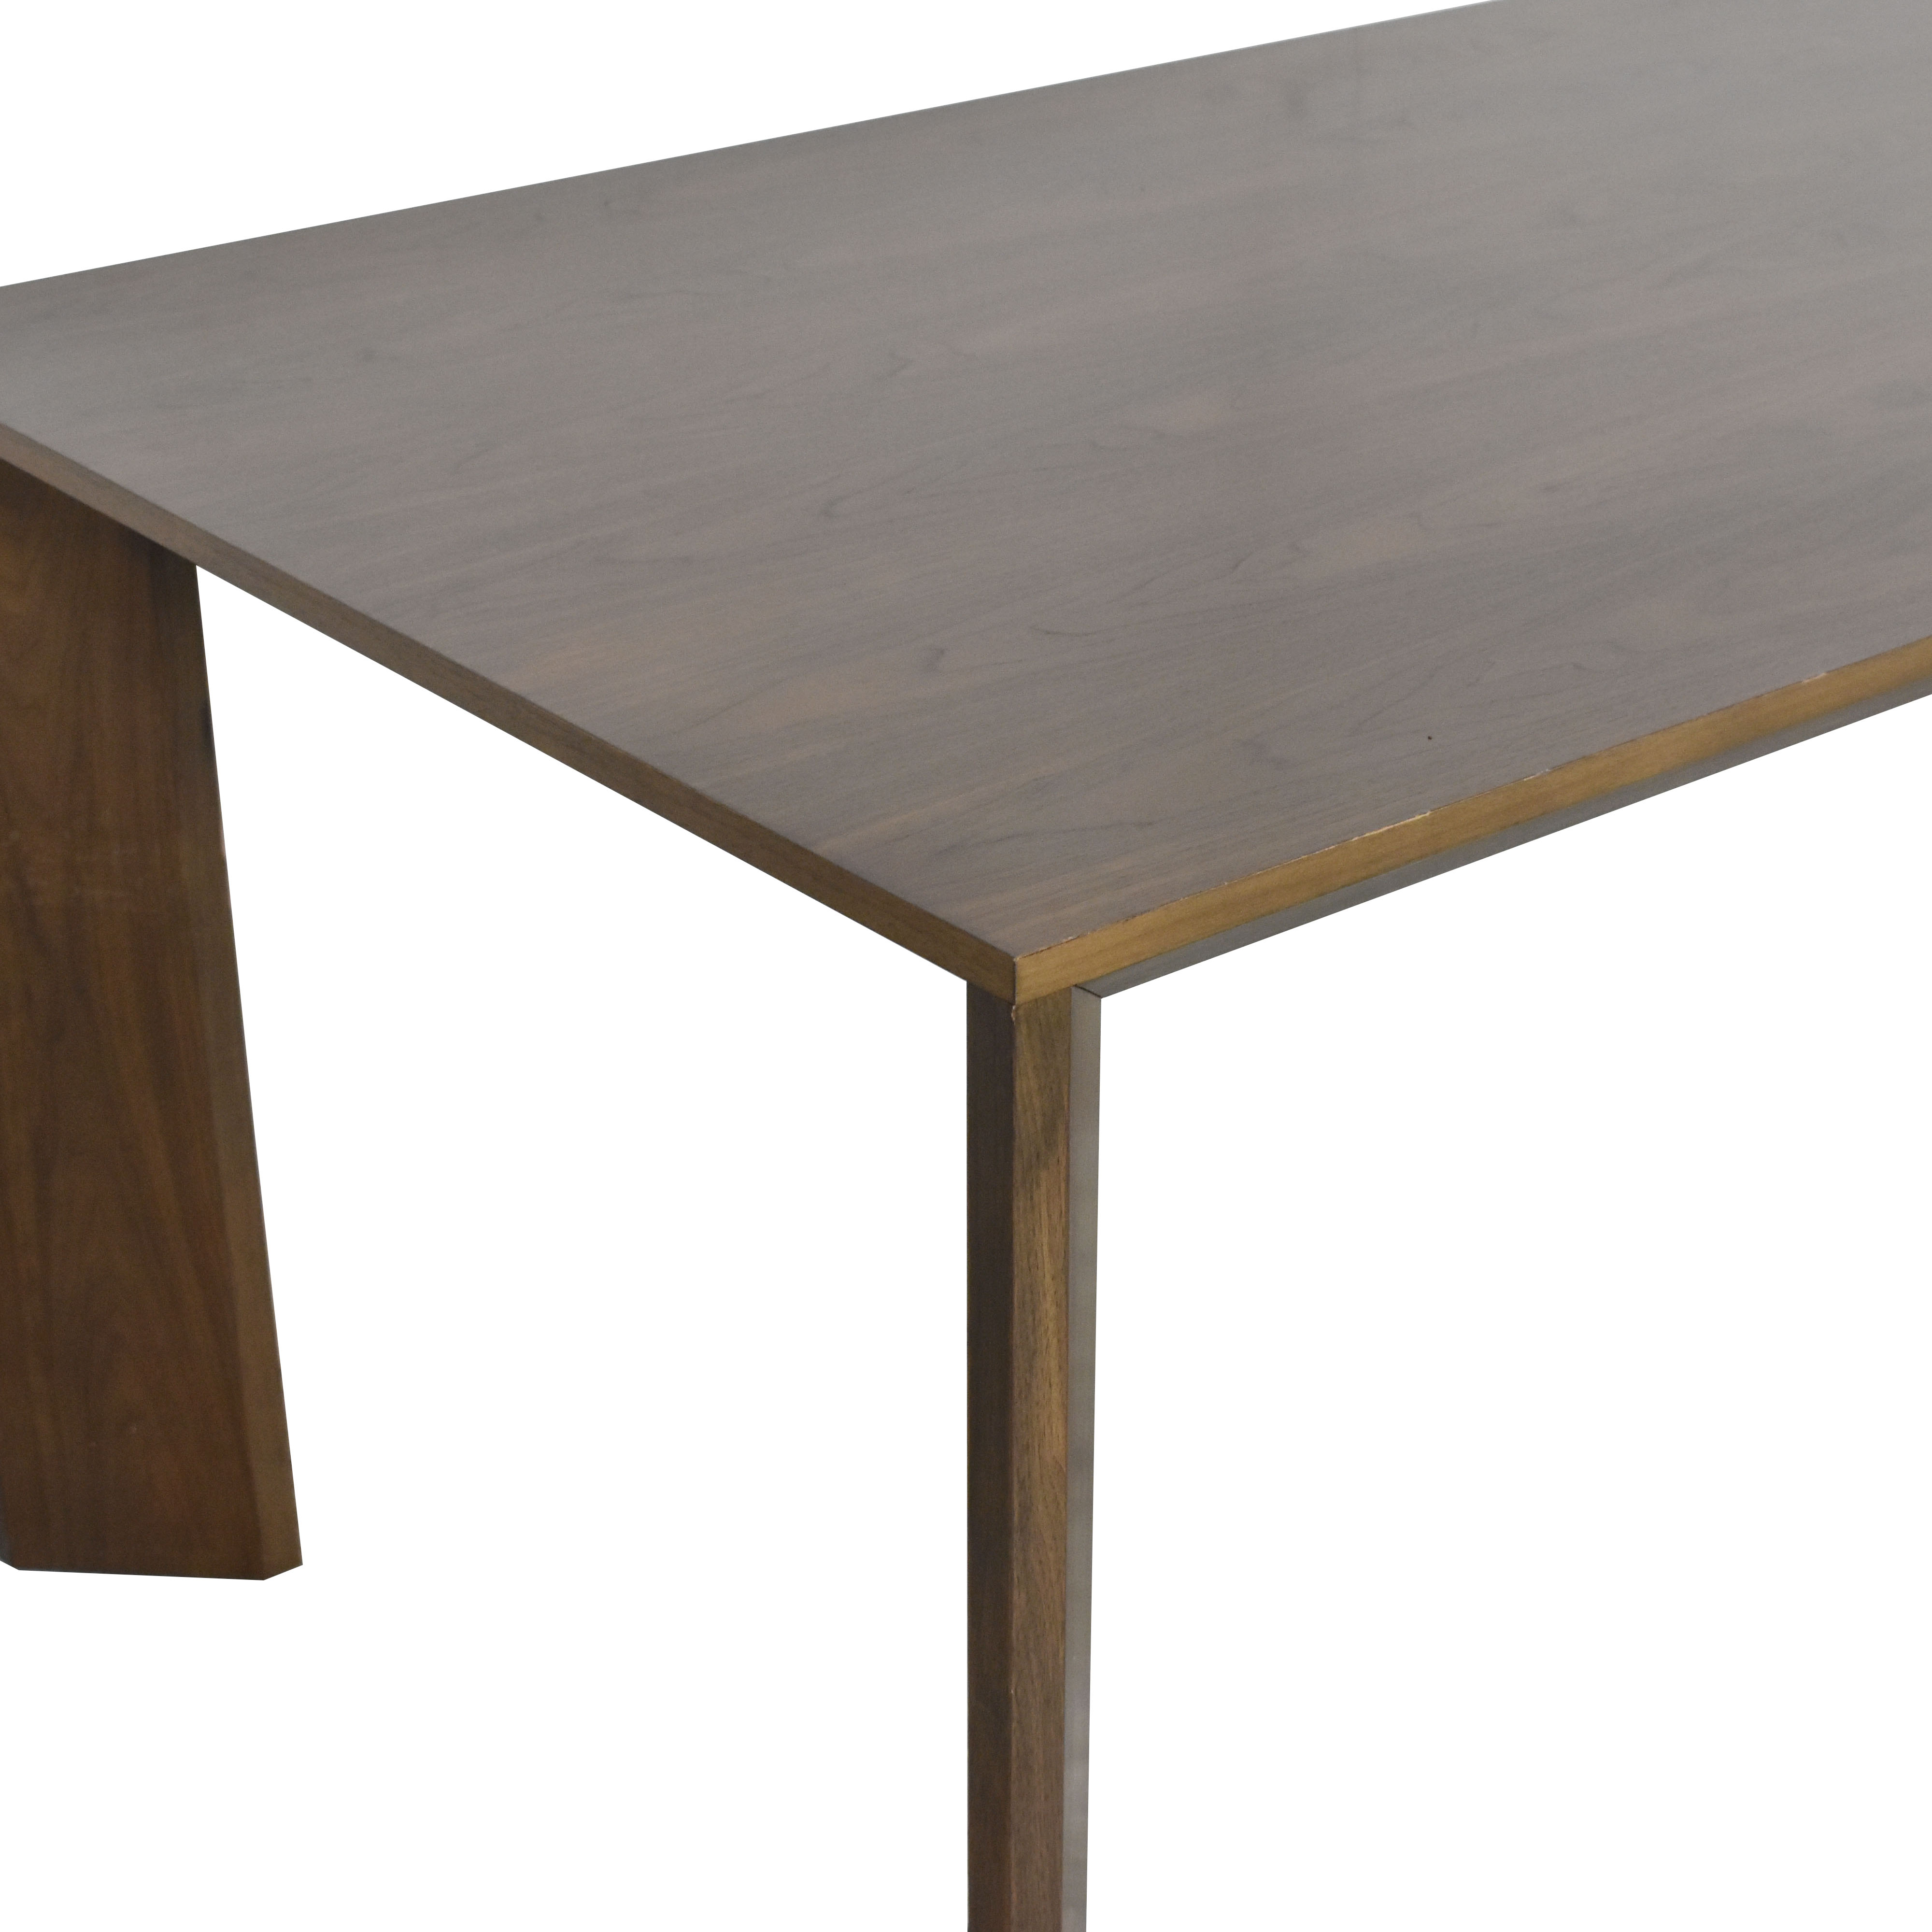 Restoration Hardware Restoration Hardware Arles Dining Table price